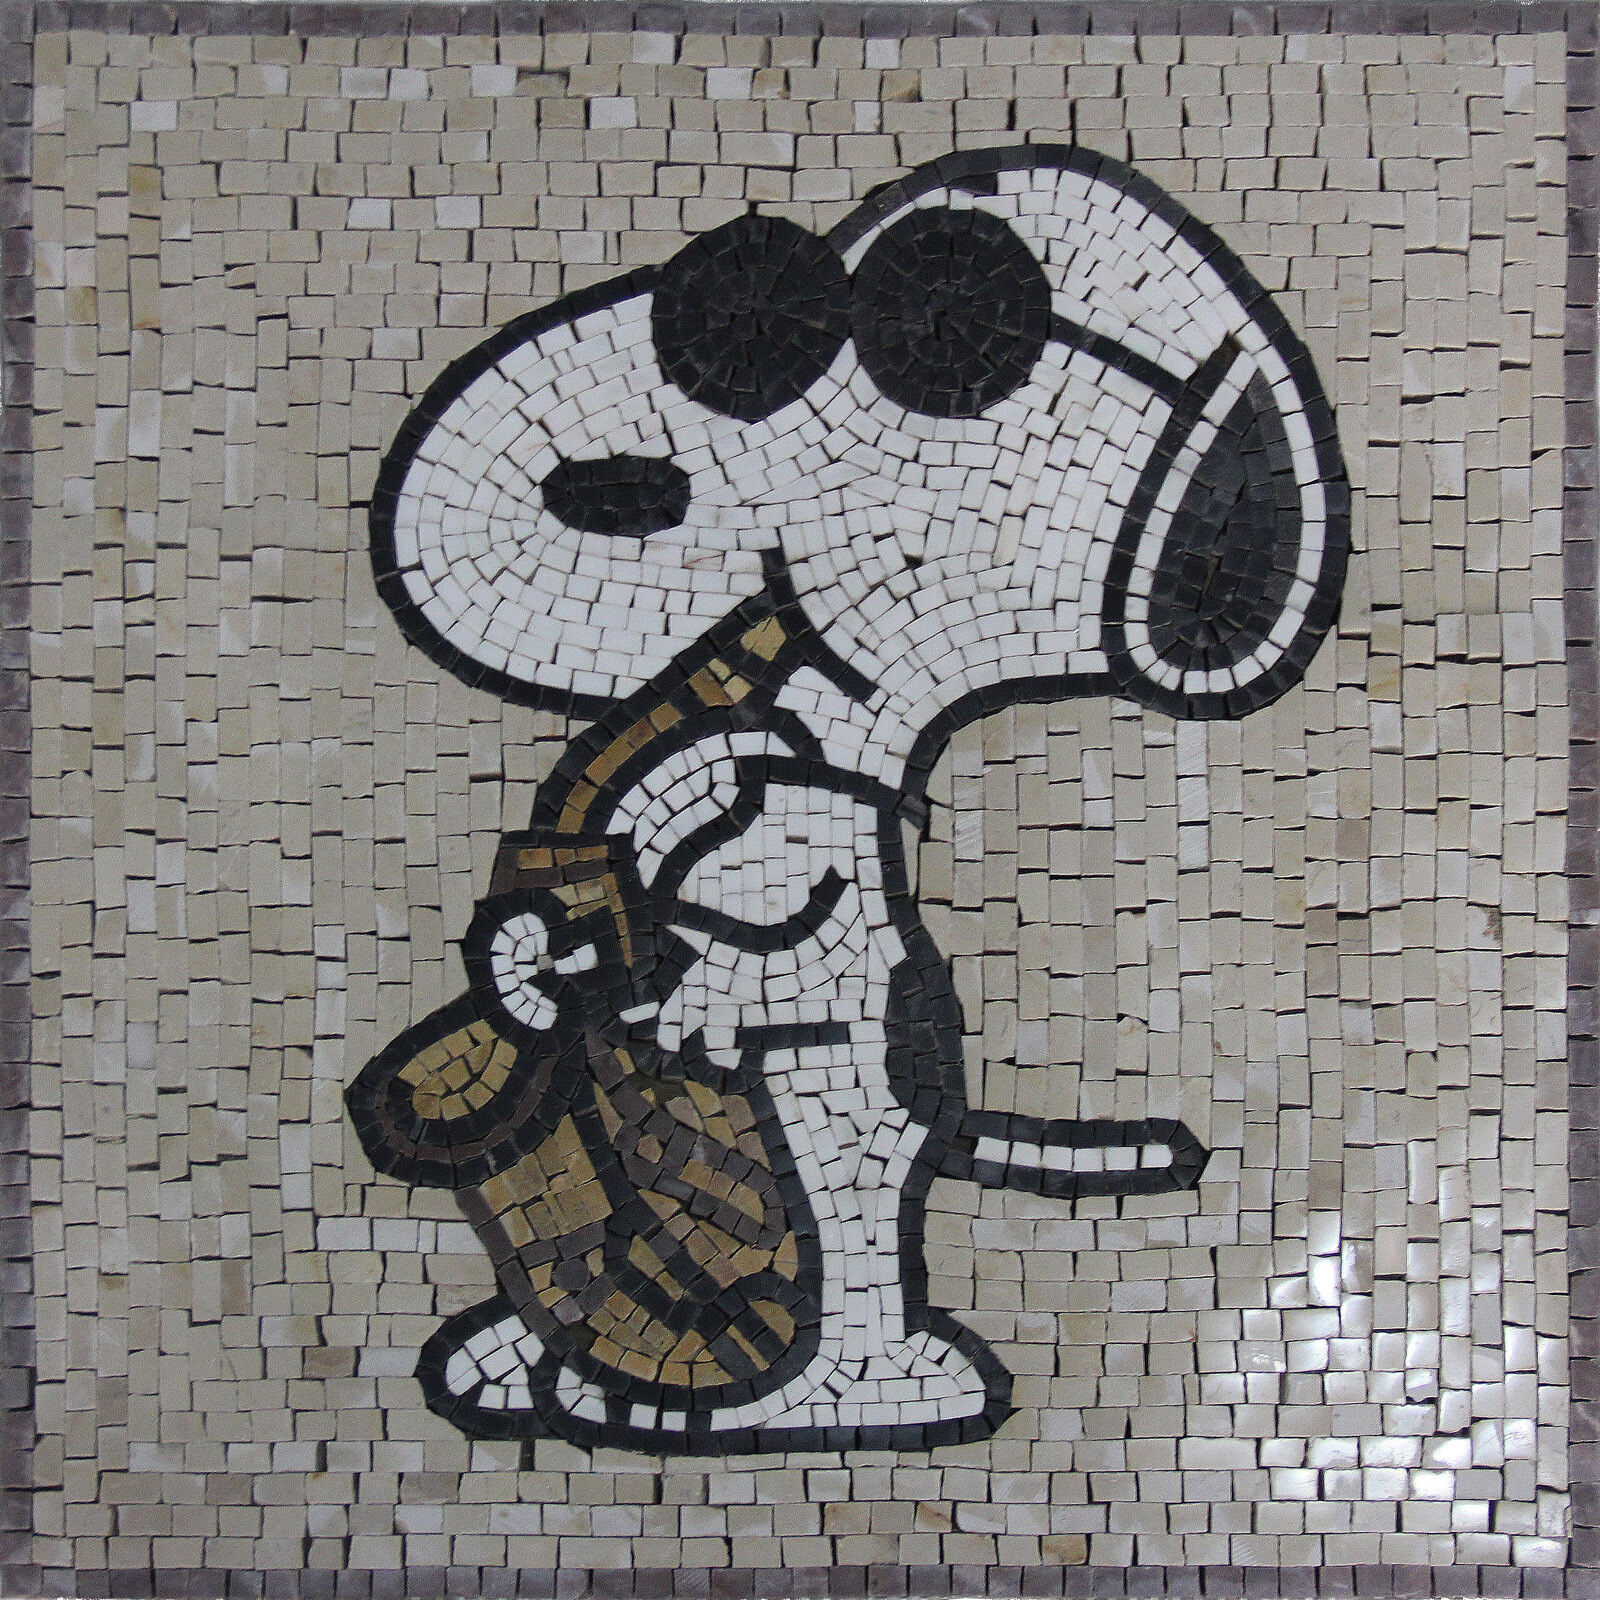 Snoopy Jazz Saxophone Music  Peace Marble Mosaic AN1076